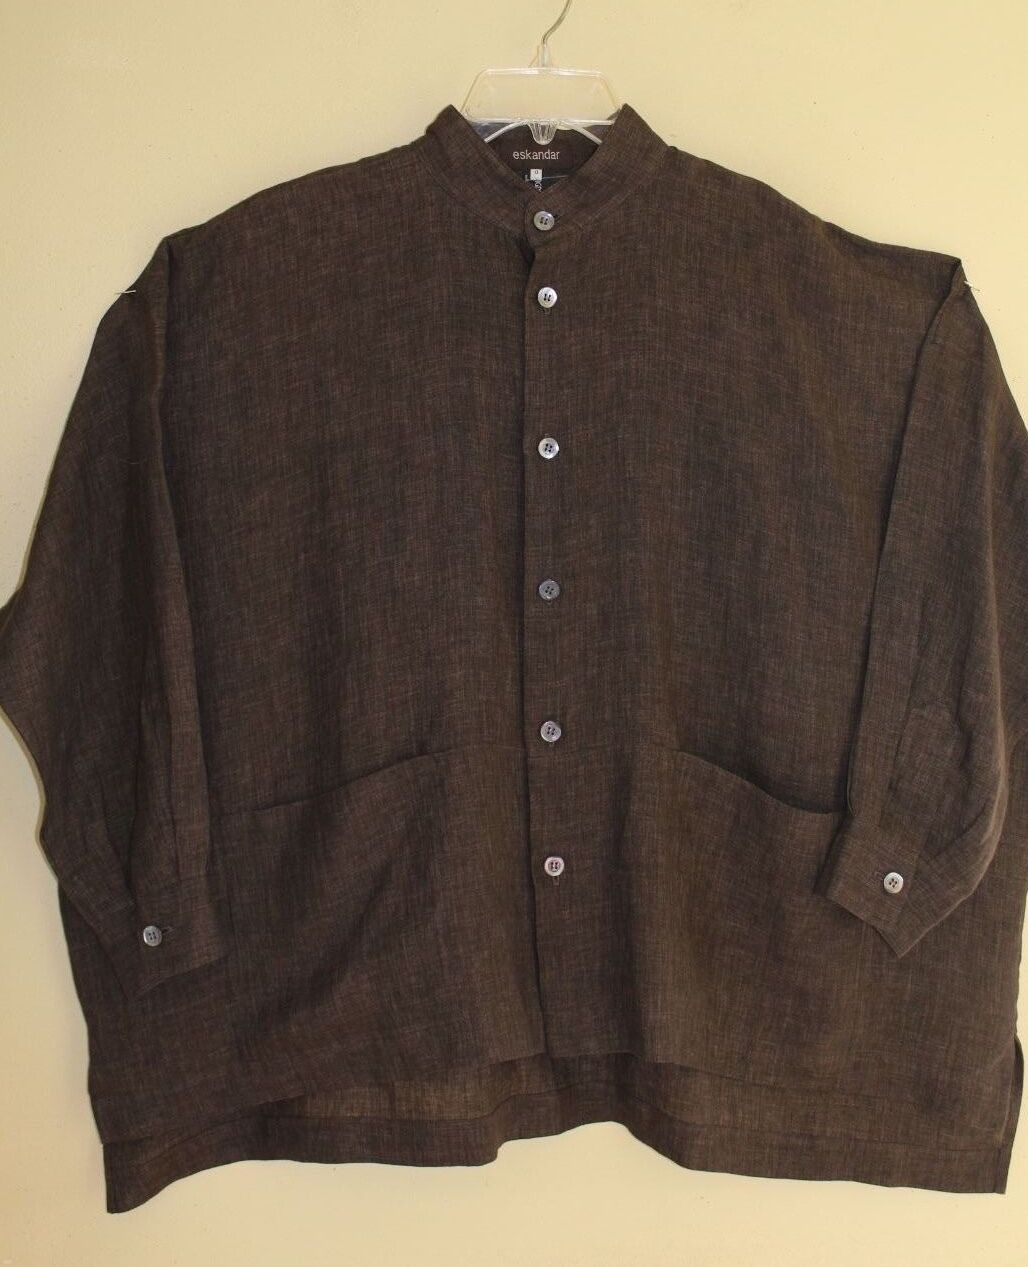 Eskandar Cocoa braun Denim Linen Pocketed OverGrößed High Low Shirt Sz 0